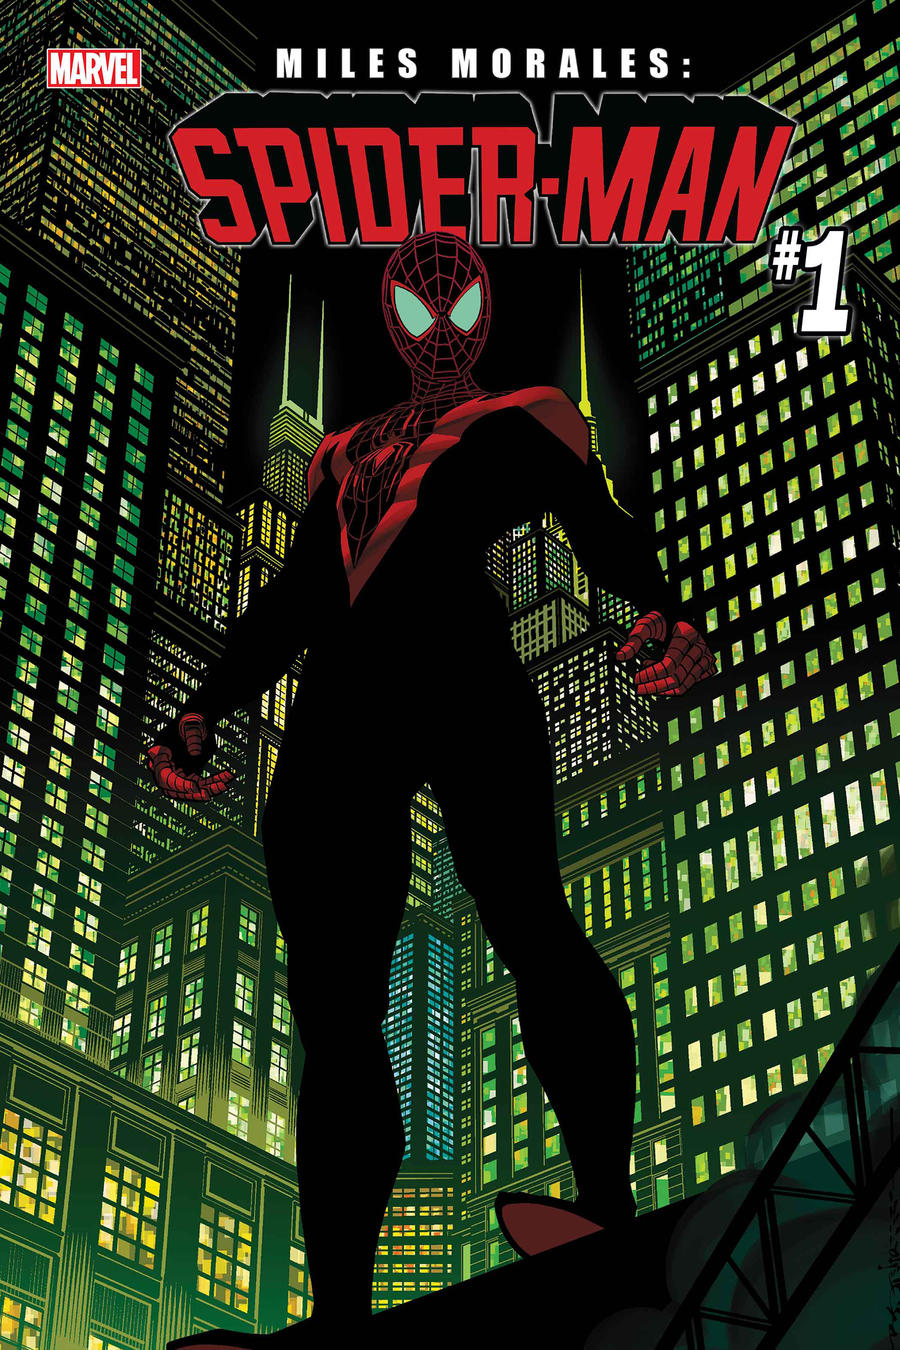 Miles Morales Spider-Man cover